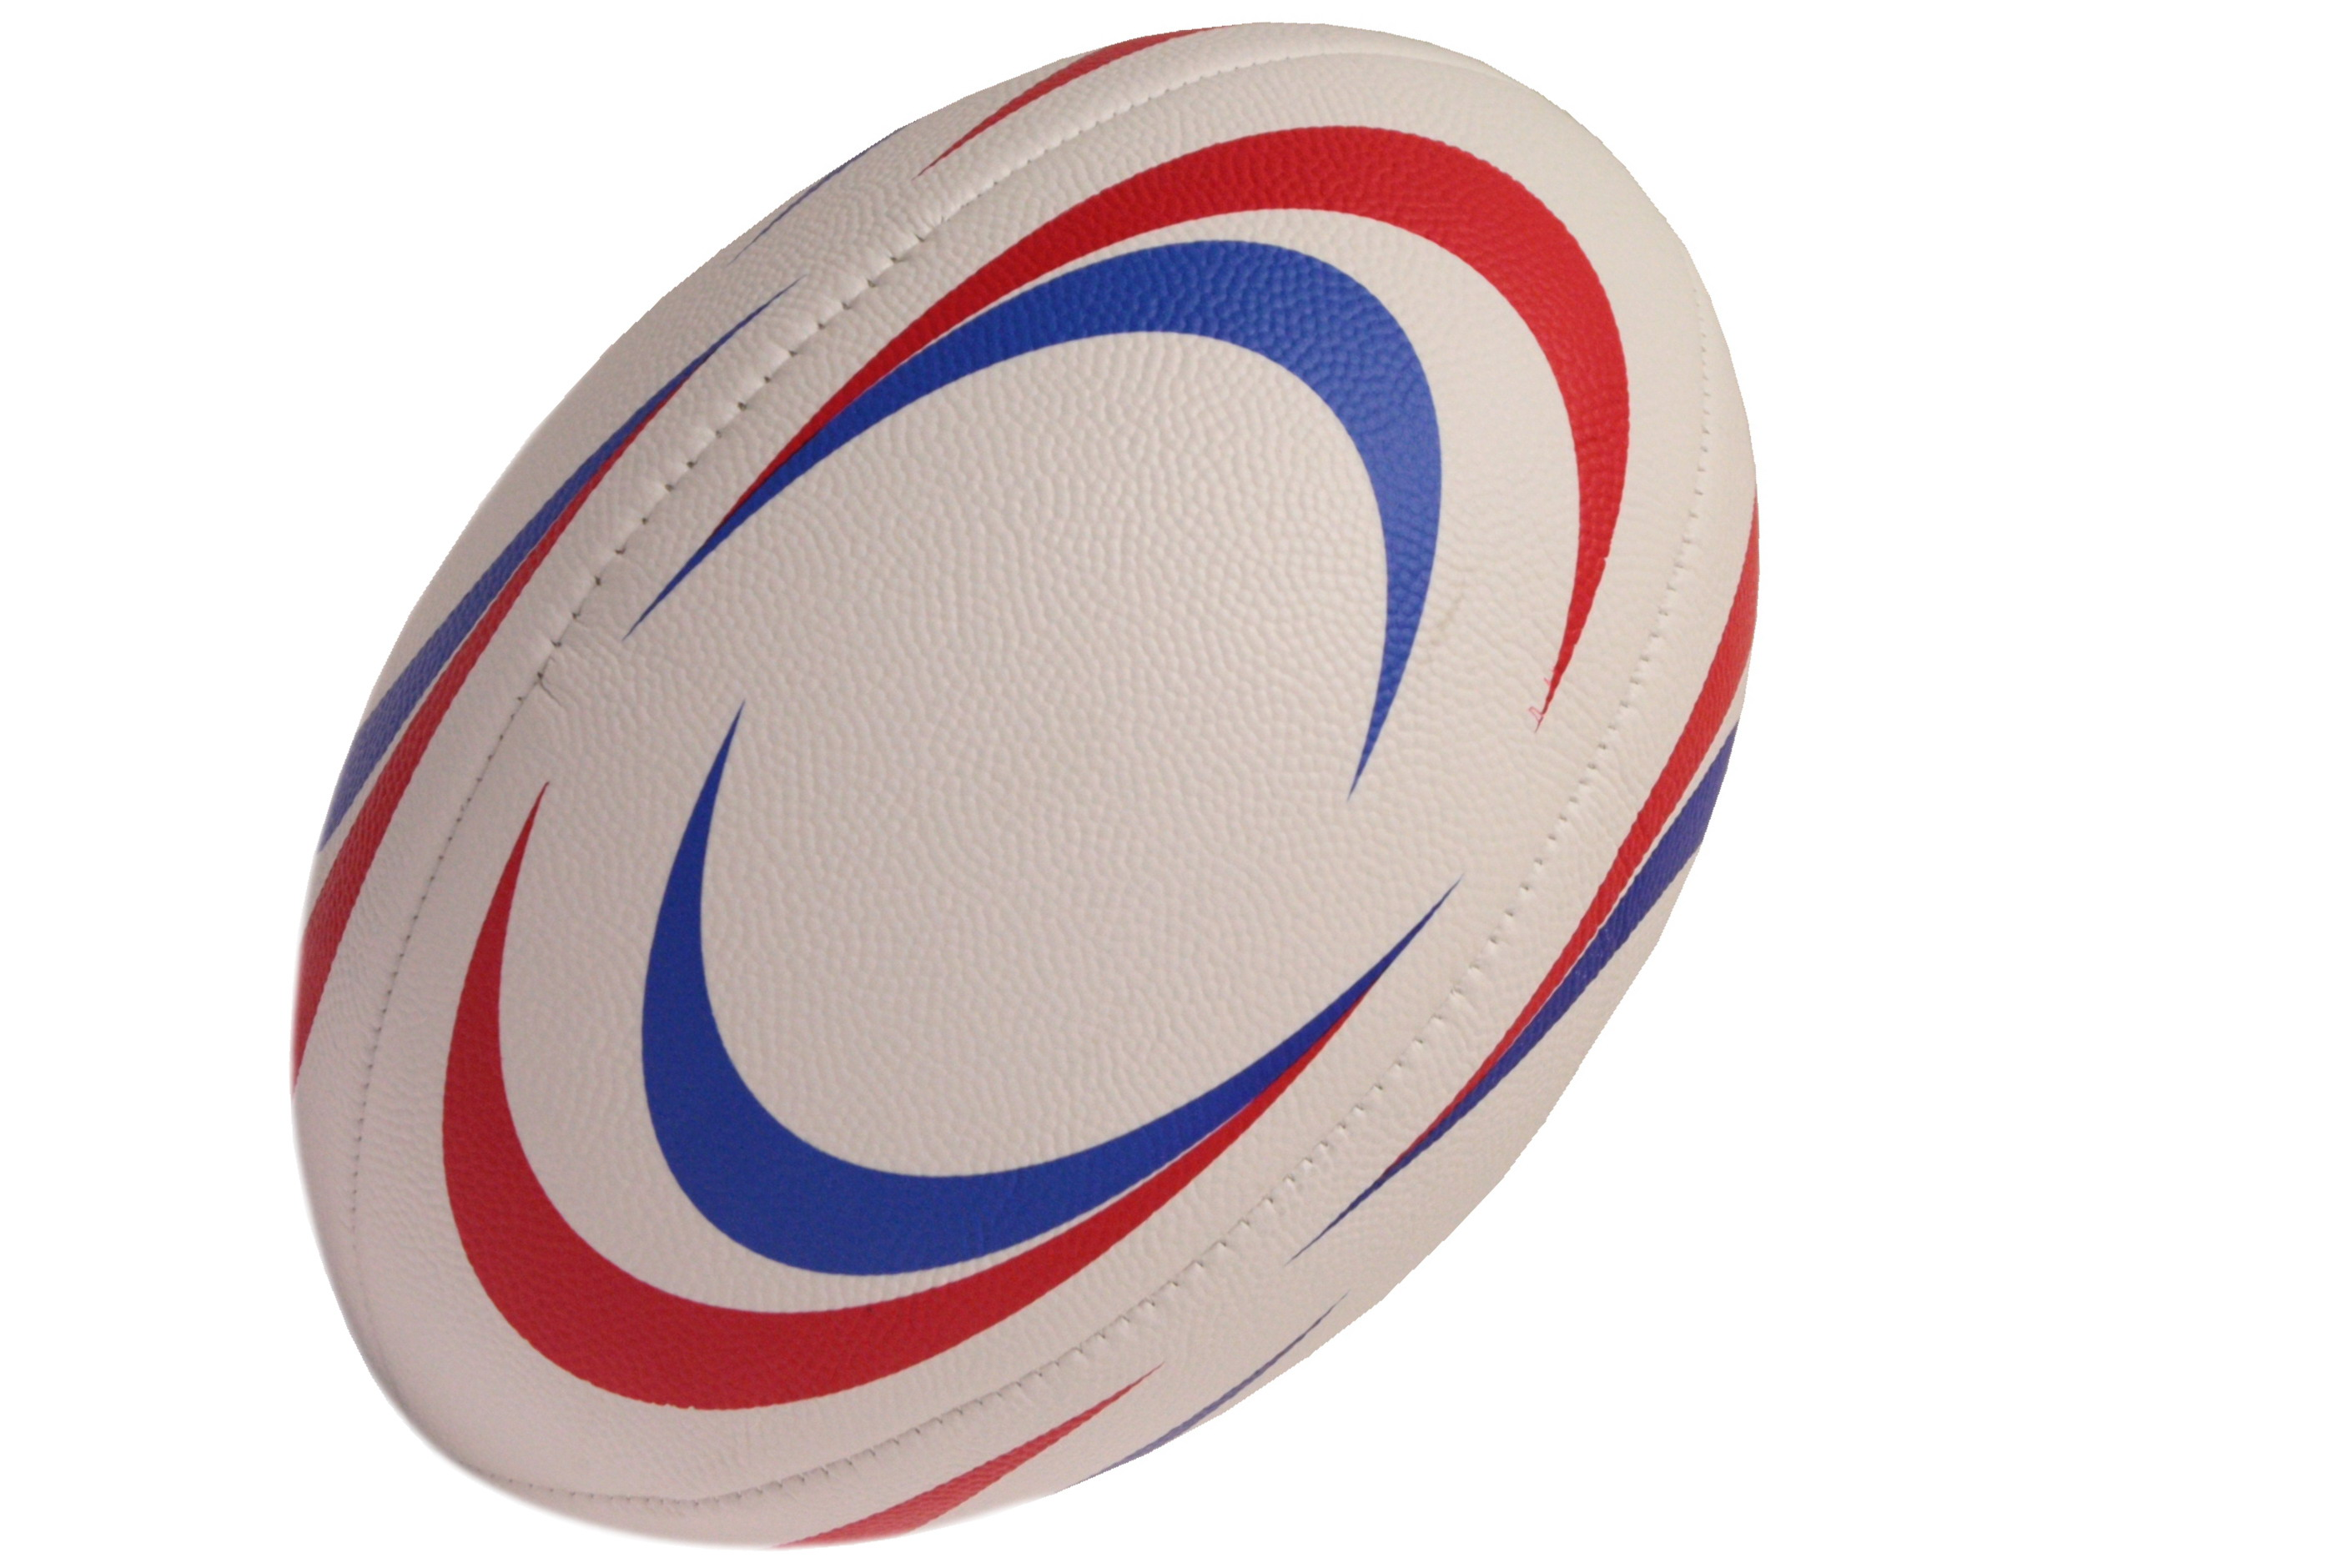 Size 5 Pvc Stitched Rugby Ball - Deflated